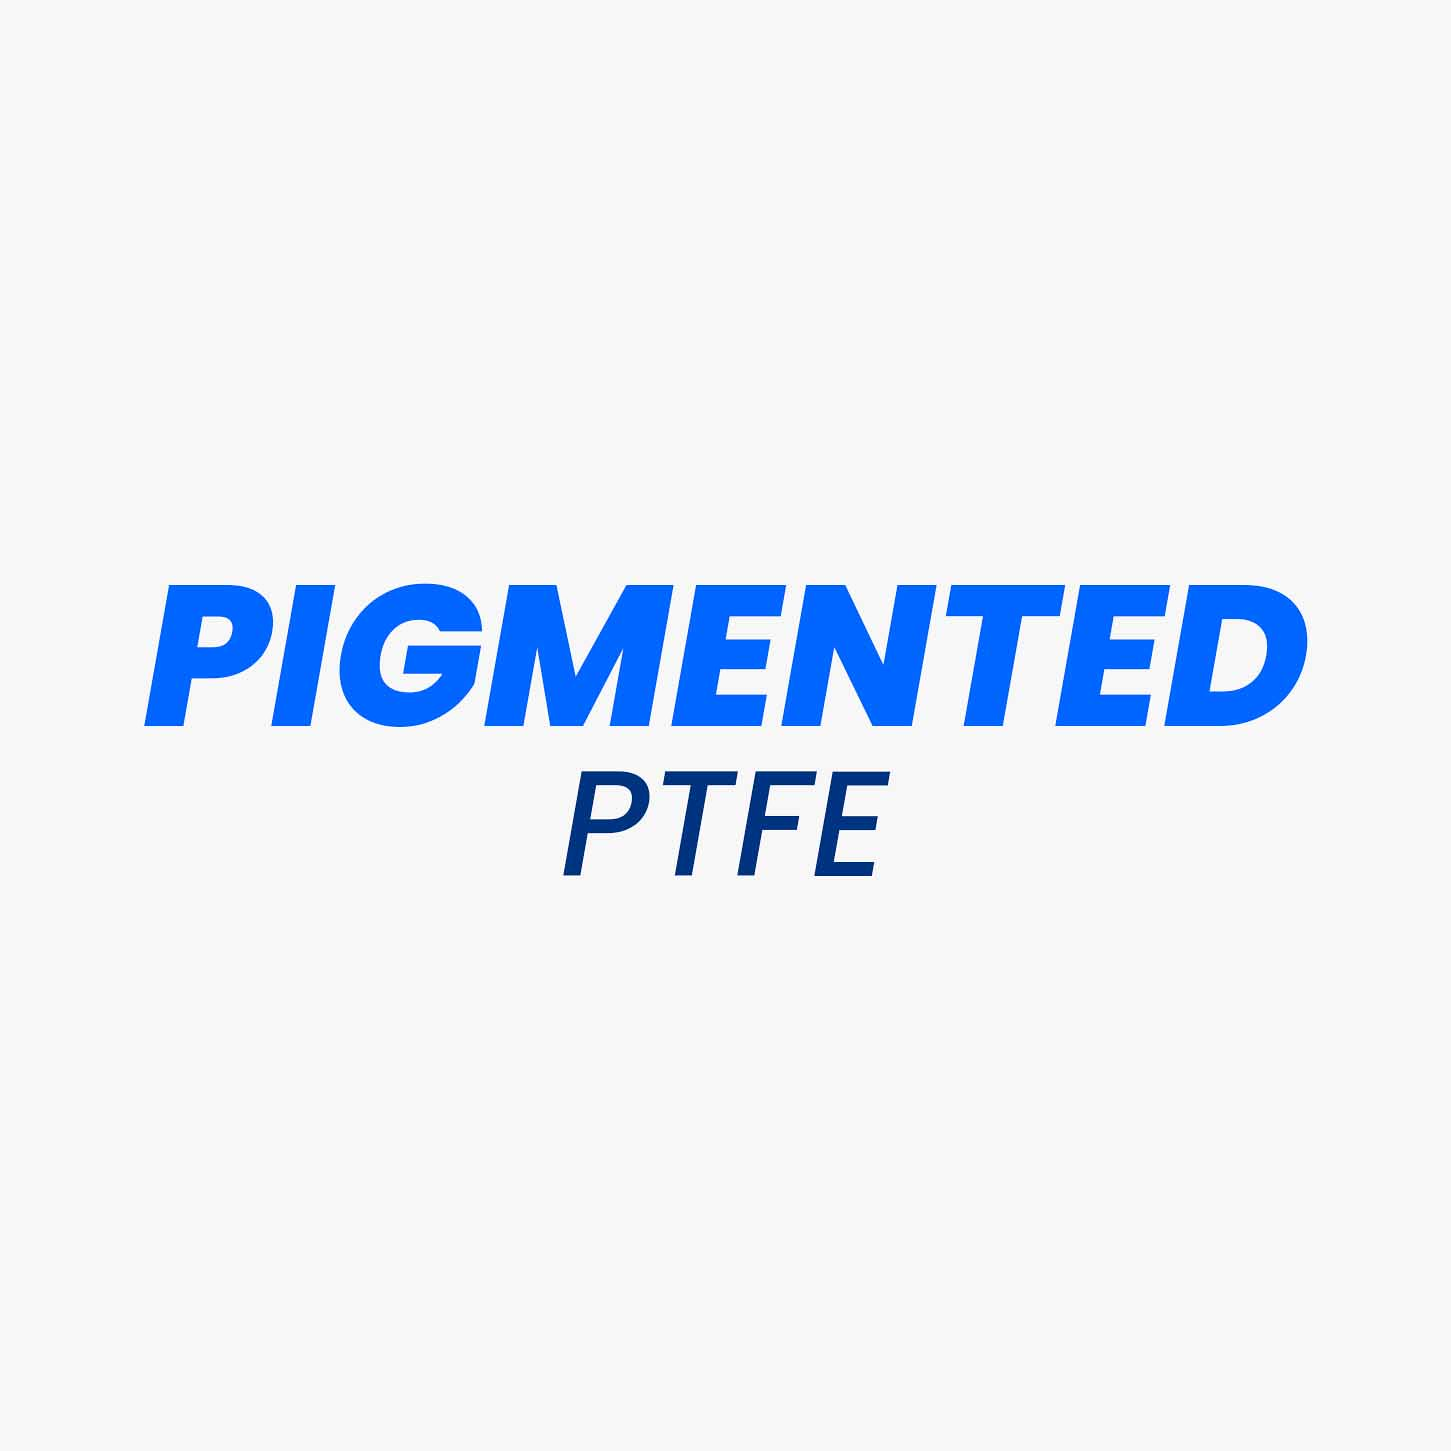 The Pigmented PTFE material consists of a dry pigment along with other fillers. The addition of pigments can improve wear and compressive properties as compared to normal compounds. Pigmented PTFE products can be used in applications where color coding is required for part identification. This helps in reduce errors during assembly or servicing, where similar PTFE parts are present. The Pigmented PTFE components are mostly used because of their non-abrasive property.